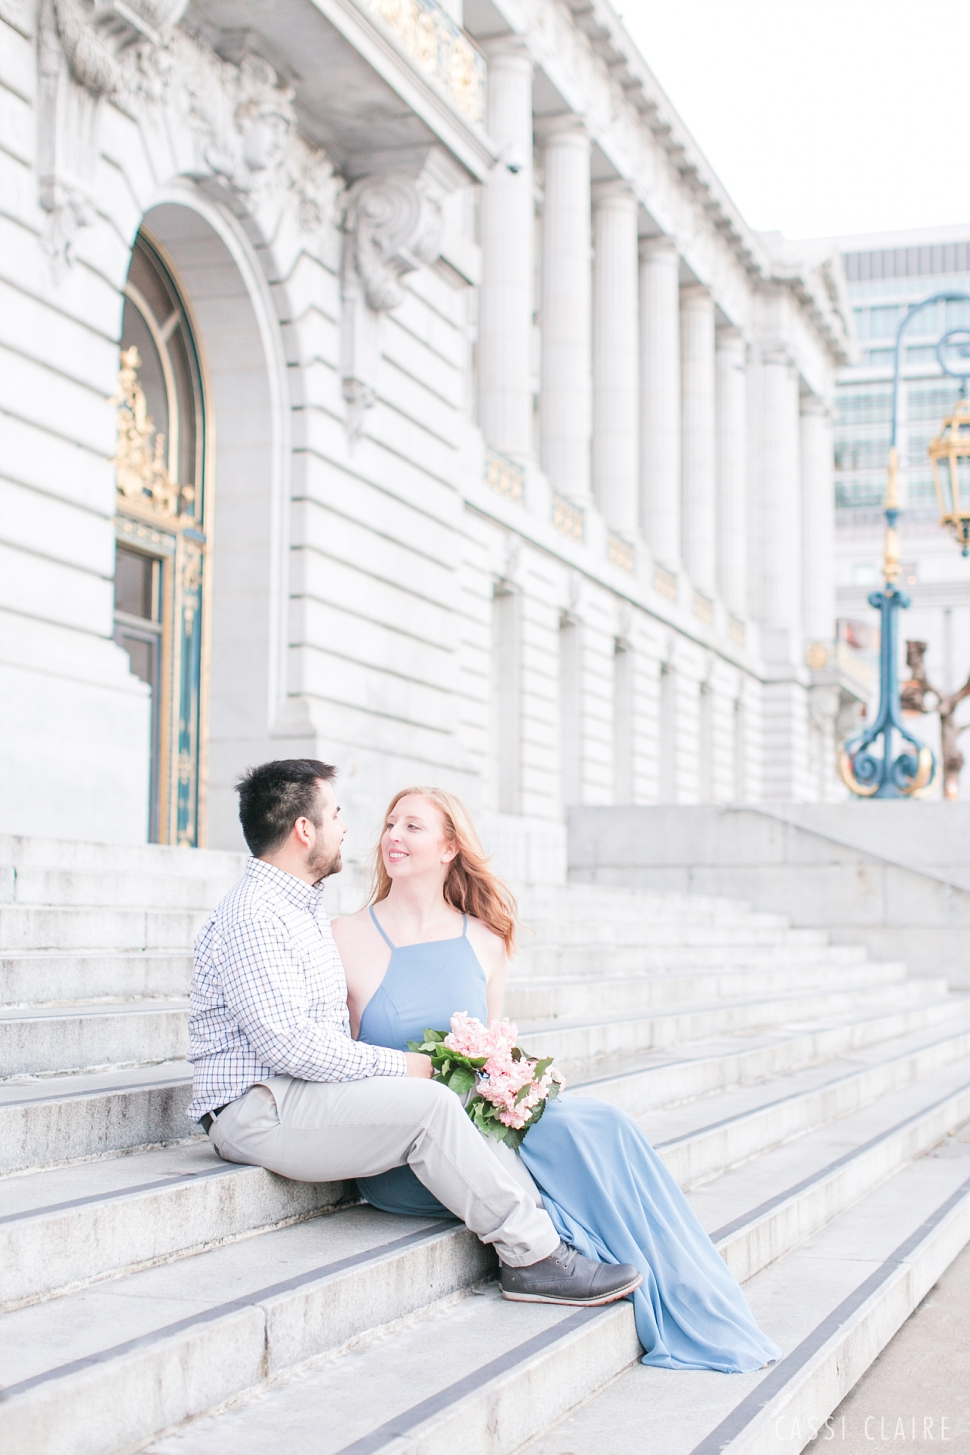 San-Francisco-Wedding-Photographer-Cassi-Claire_14.jpg